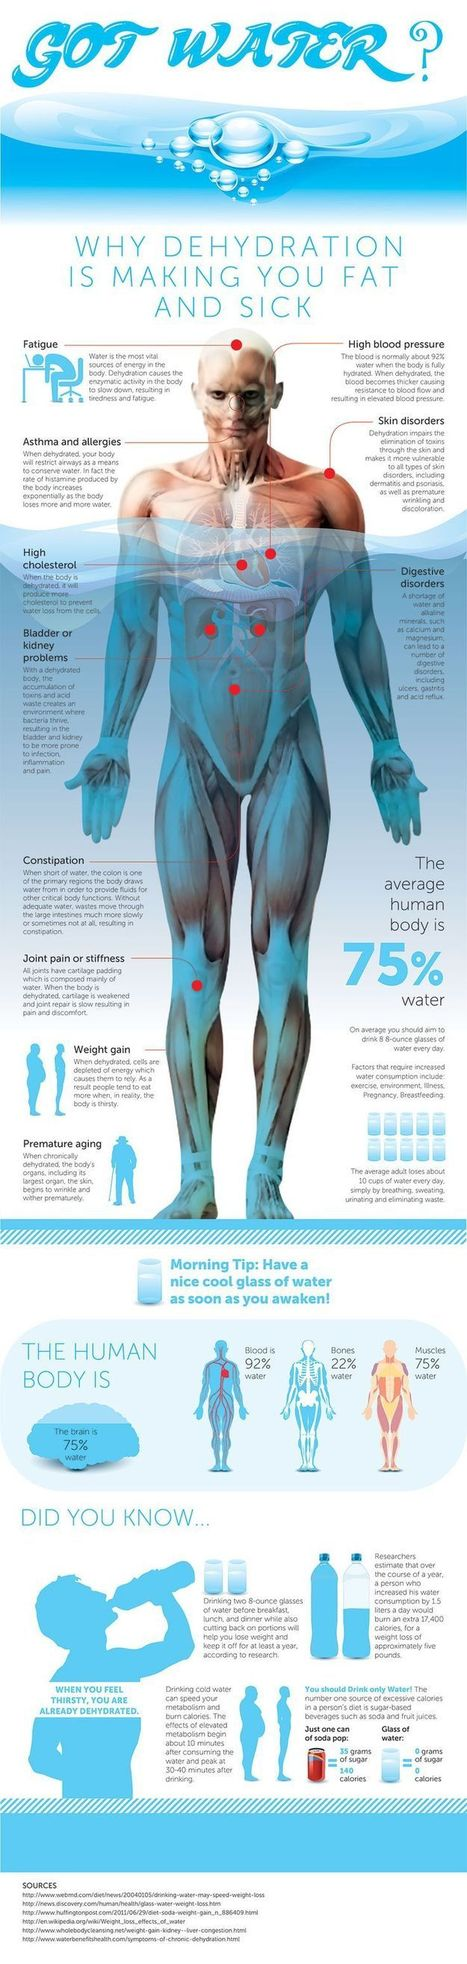 Pin by Al Gonzalez on Bodybuilding &  Fitness | Pinterest | Sports Chiropractic and its benefits | Scoop.it